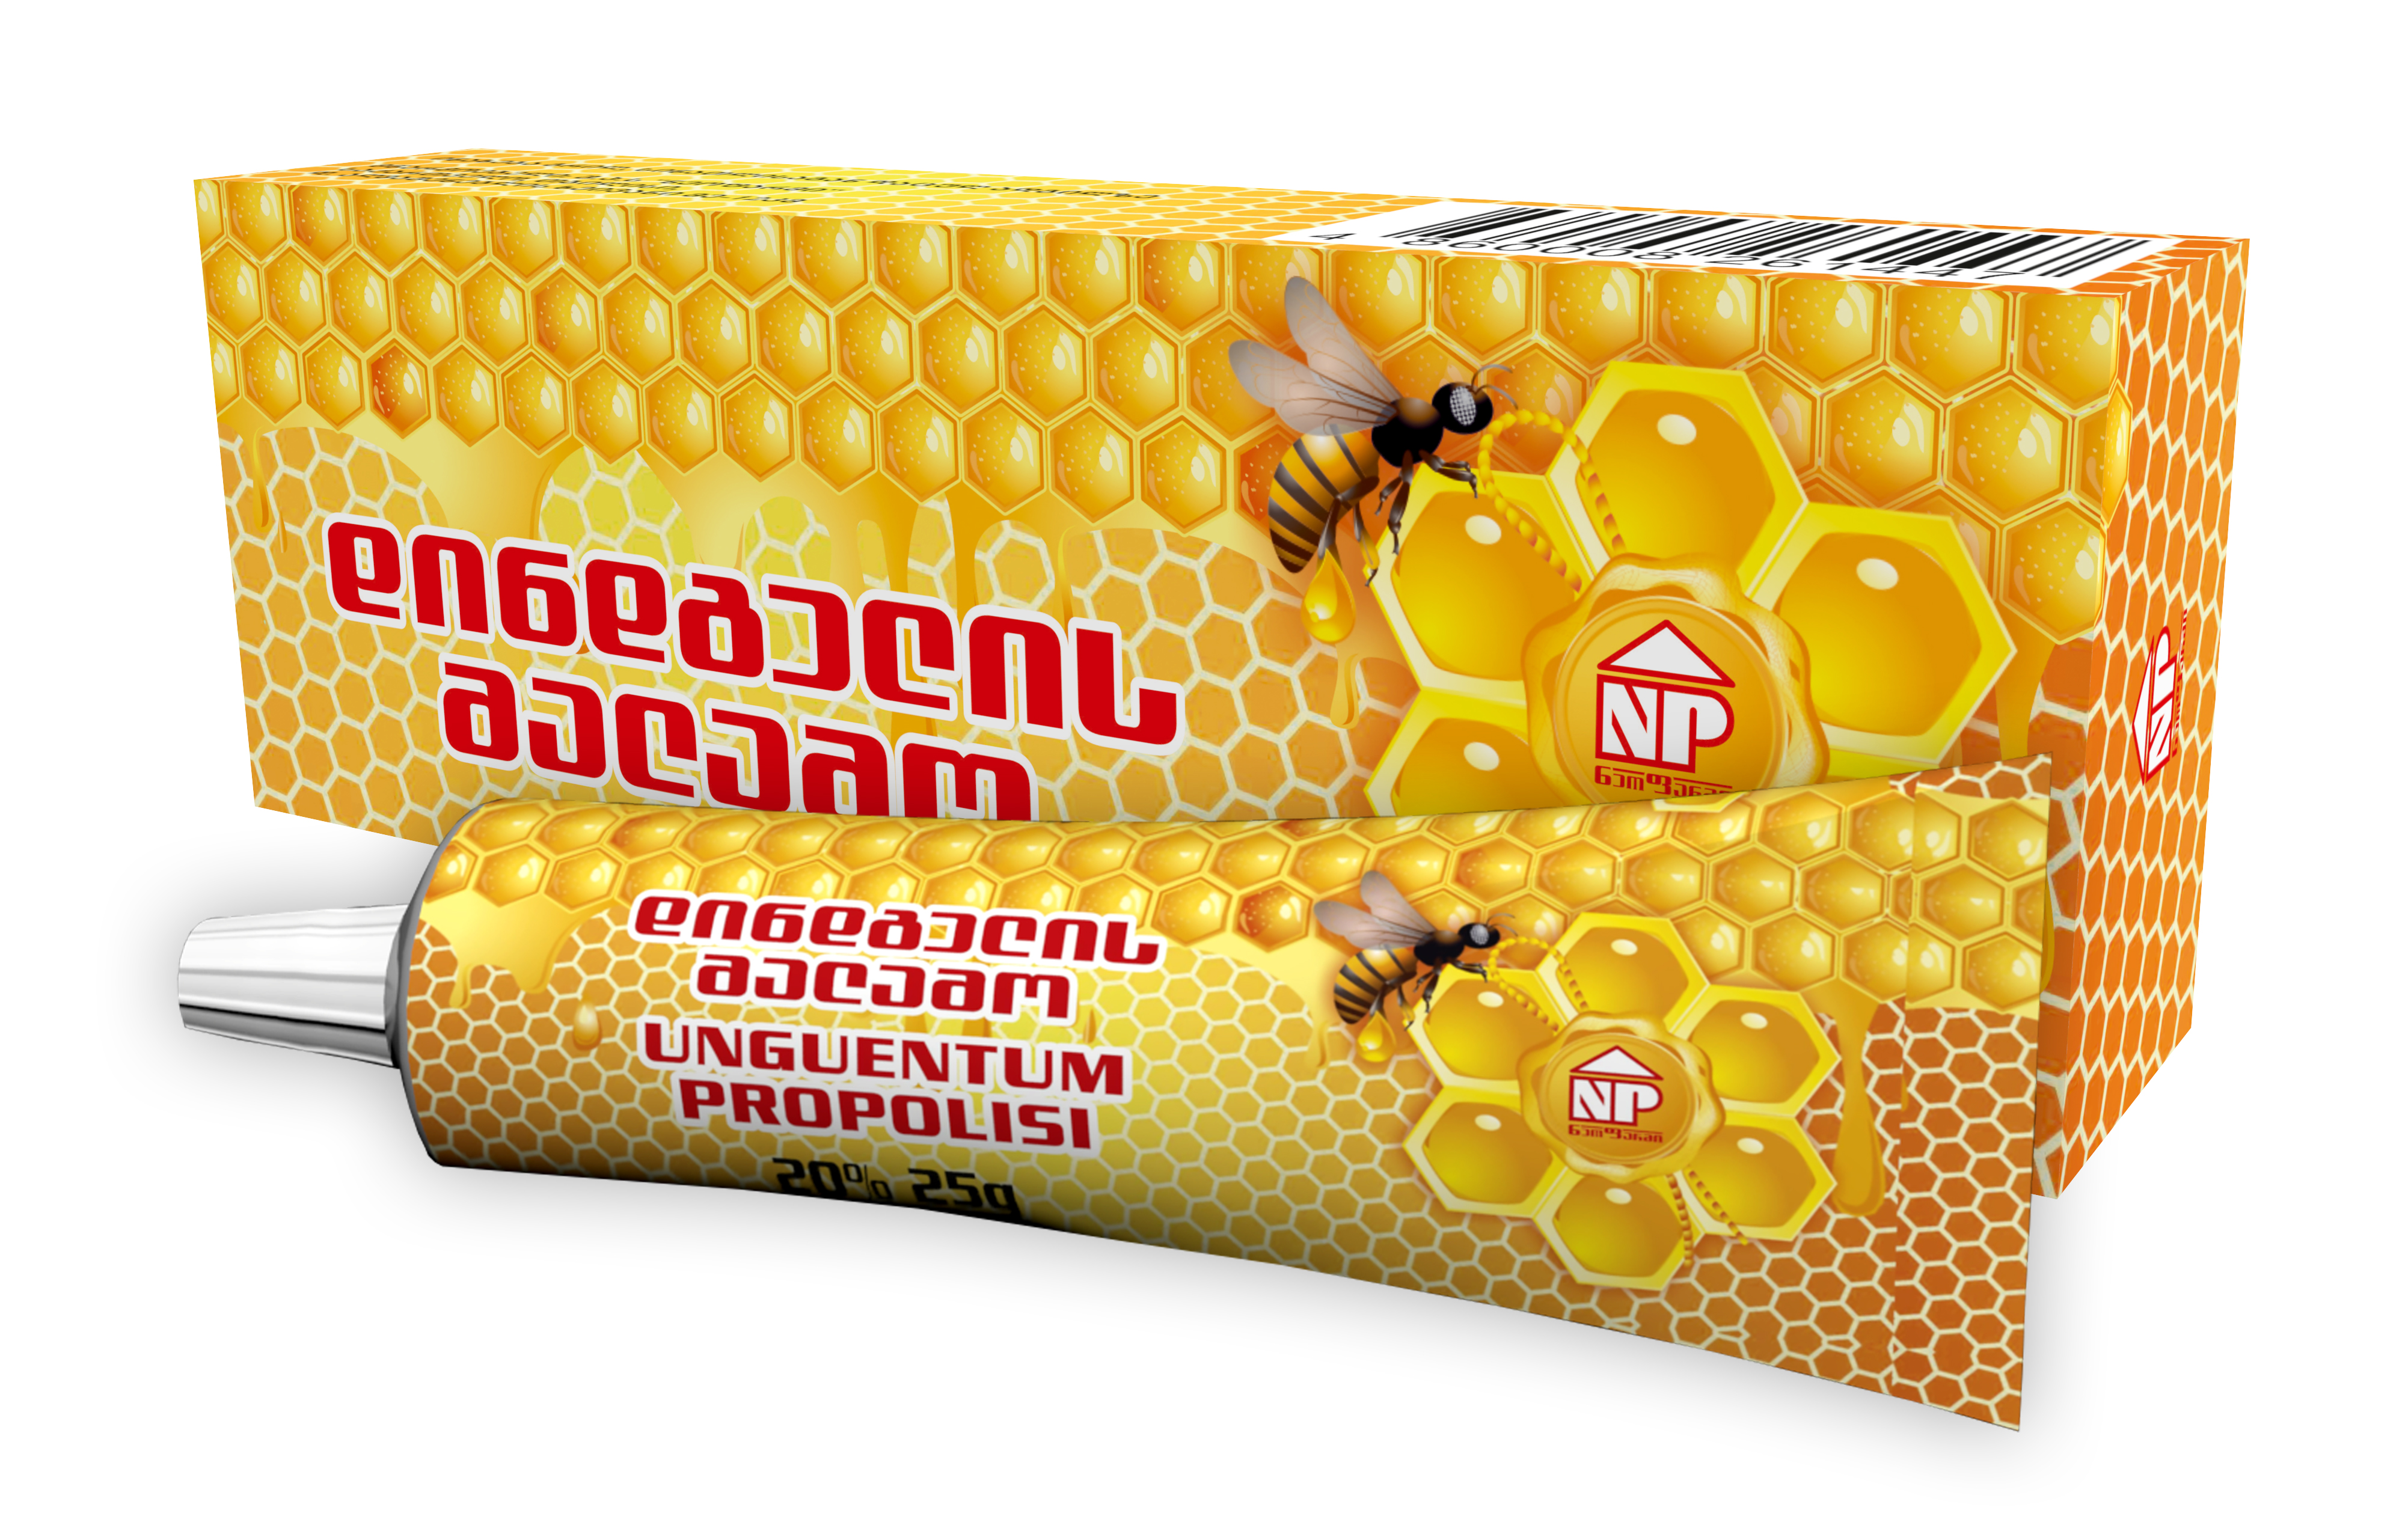 20% 25g in aluminum tube - Propolis ointment